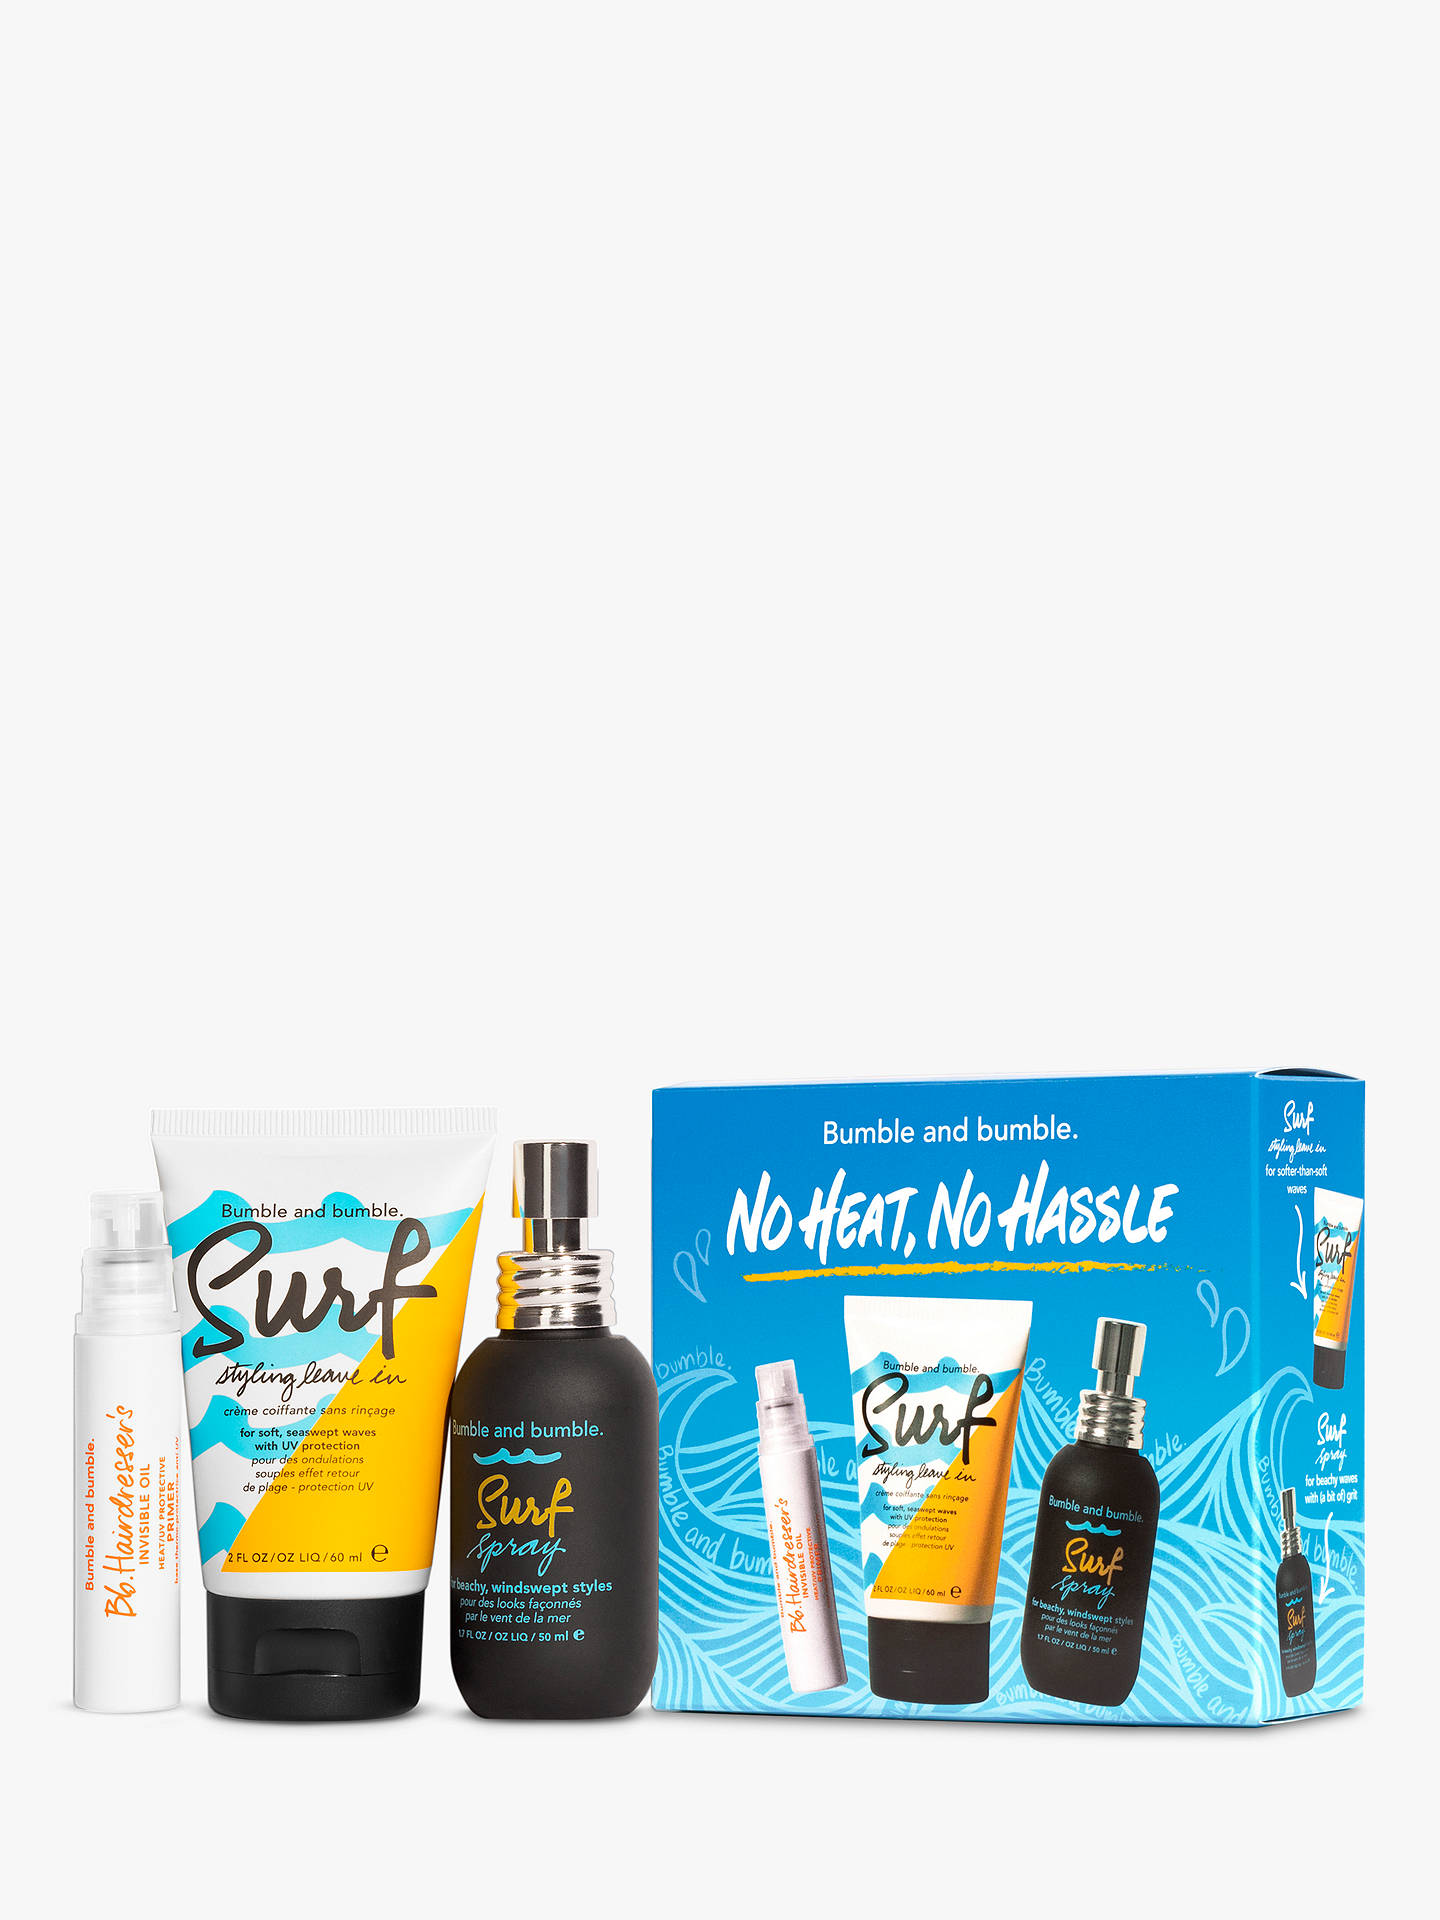 Buy Bumble and bumble No Heat No Hassle Haircare Gift Set Online at johnlewis.com